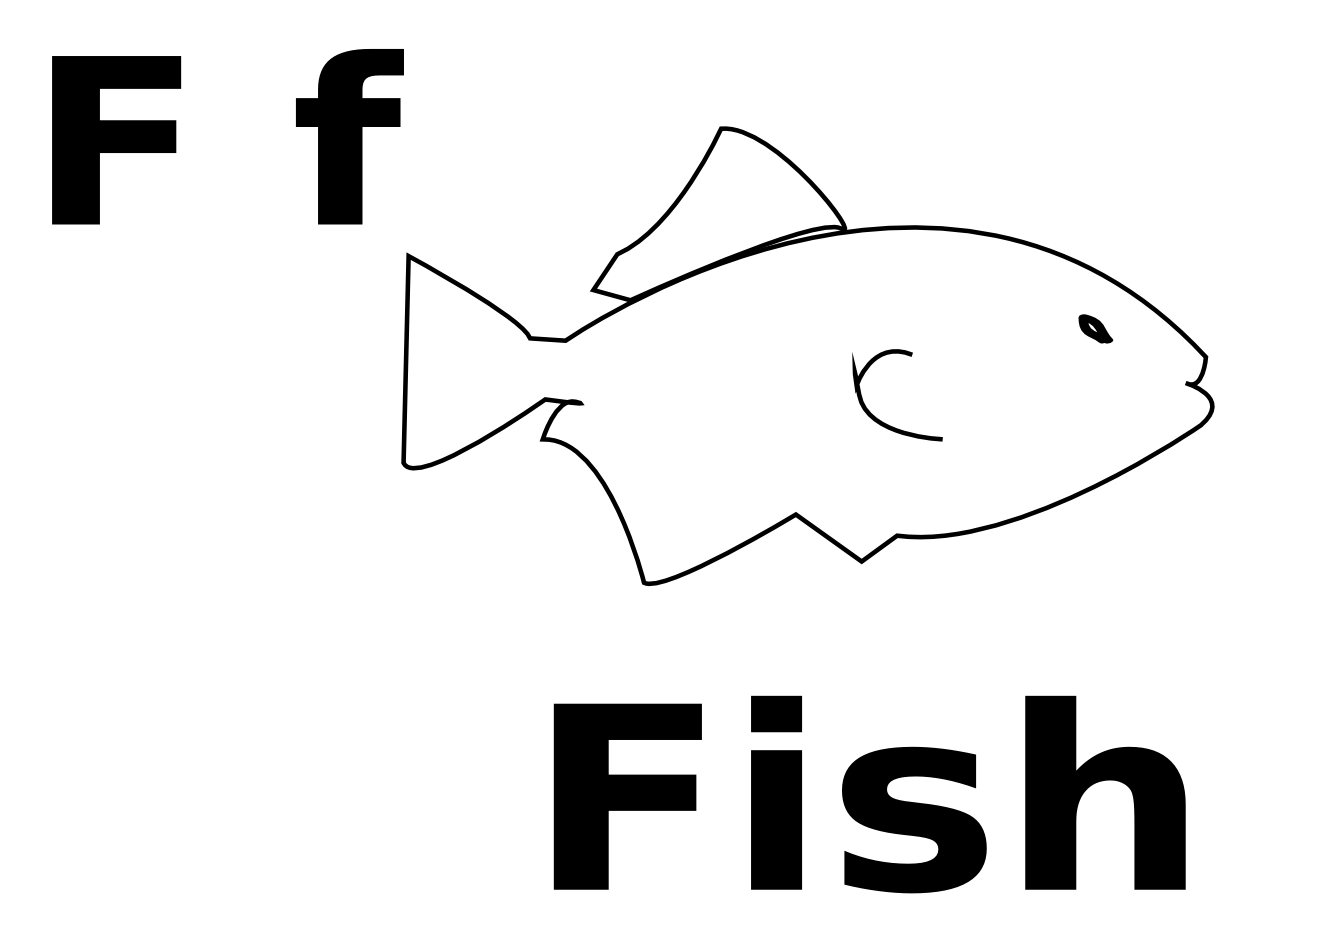 Fish black and white clown fish clip art black and white free clipart